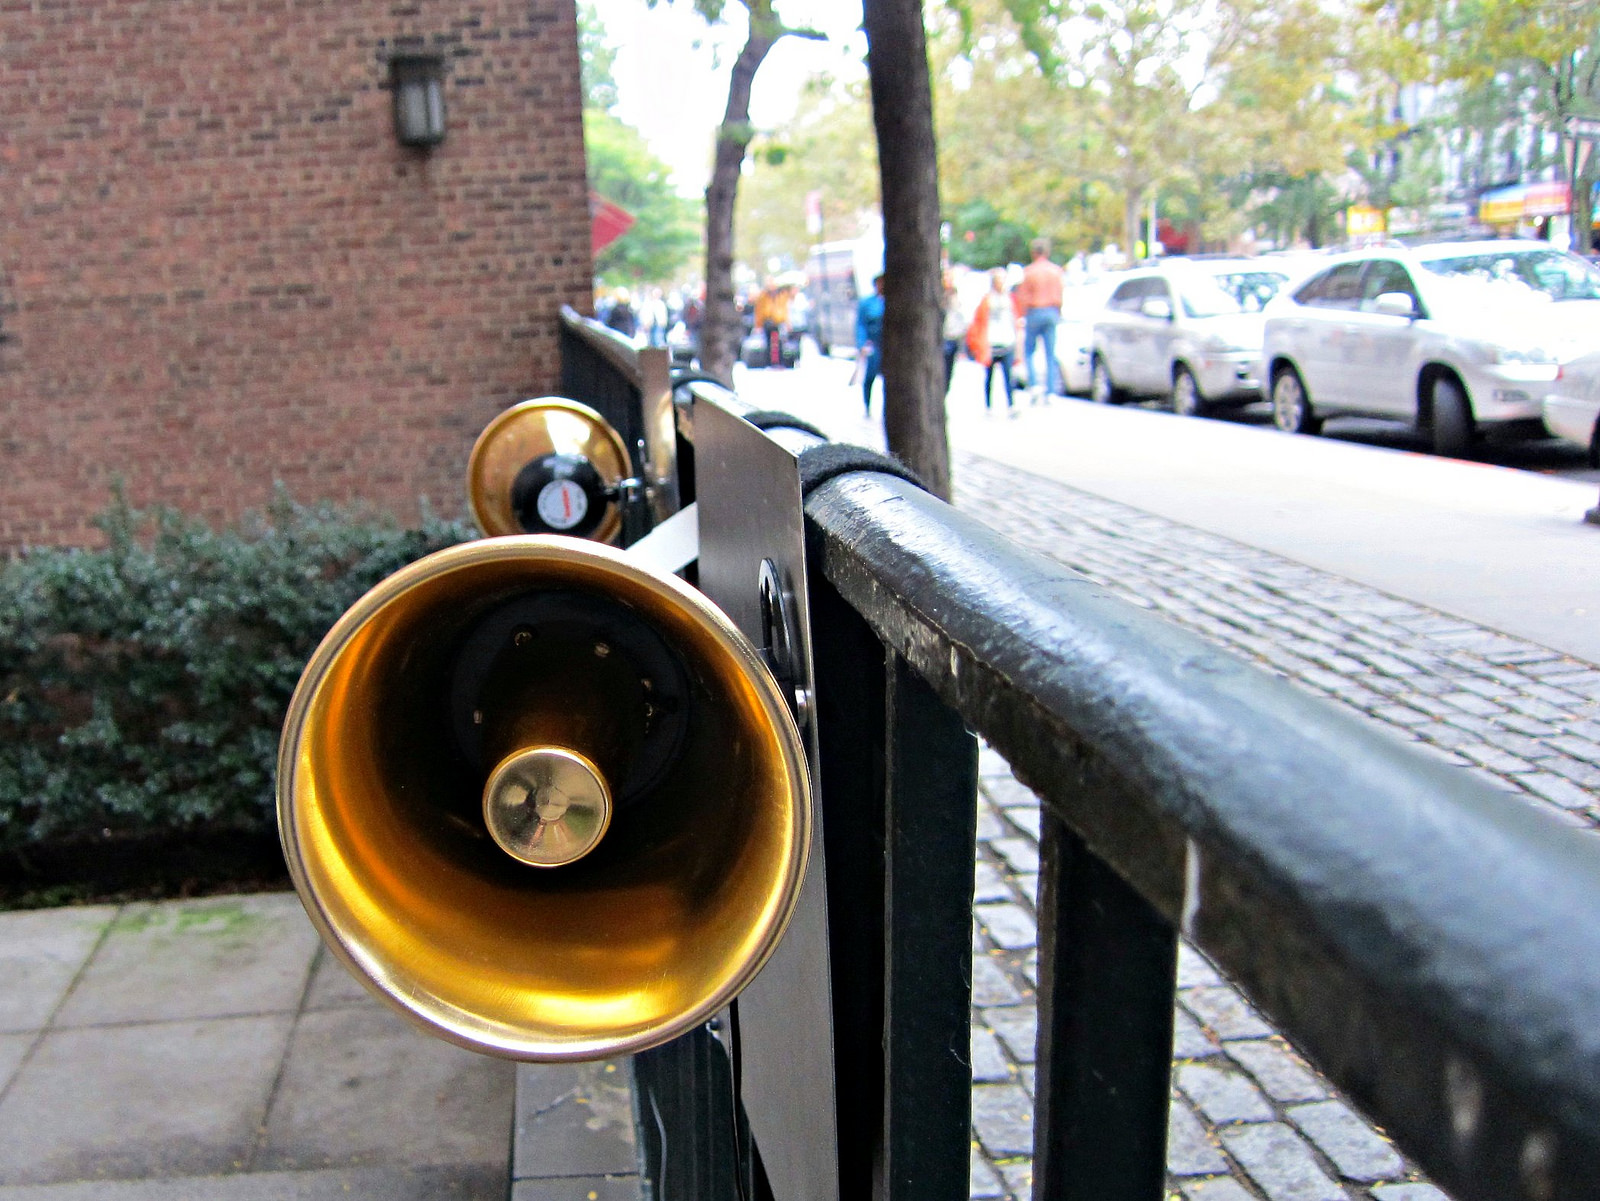 """Jen Reimer and Max Stein, """"Sounding the City,"""" which played the bells from the church on the opposite side of the street"""